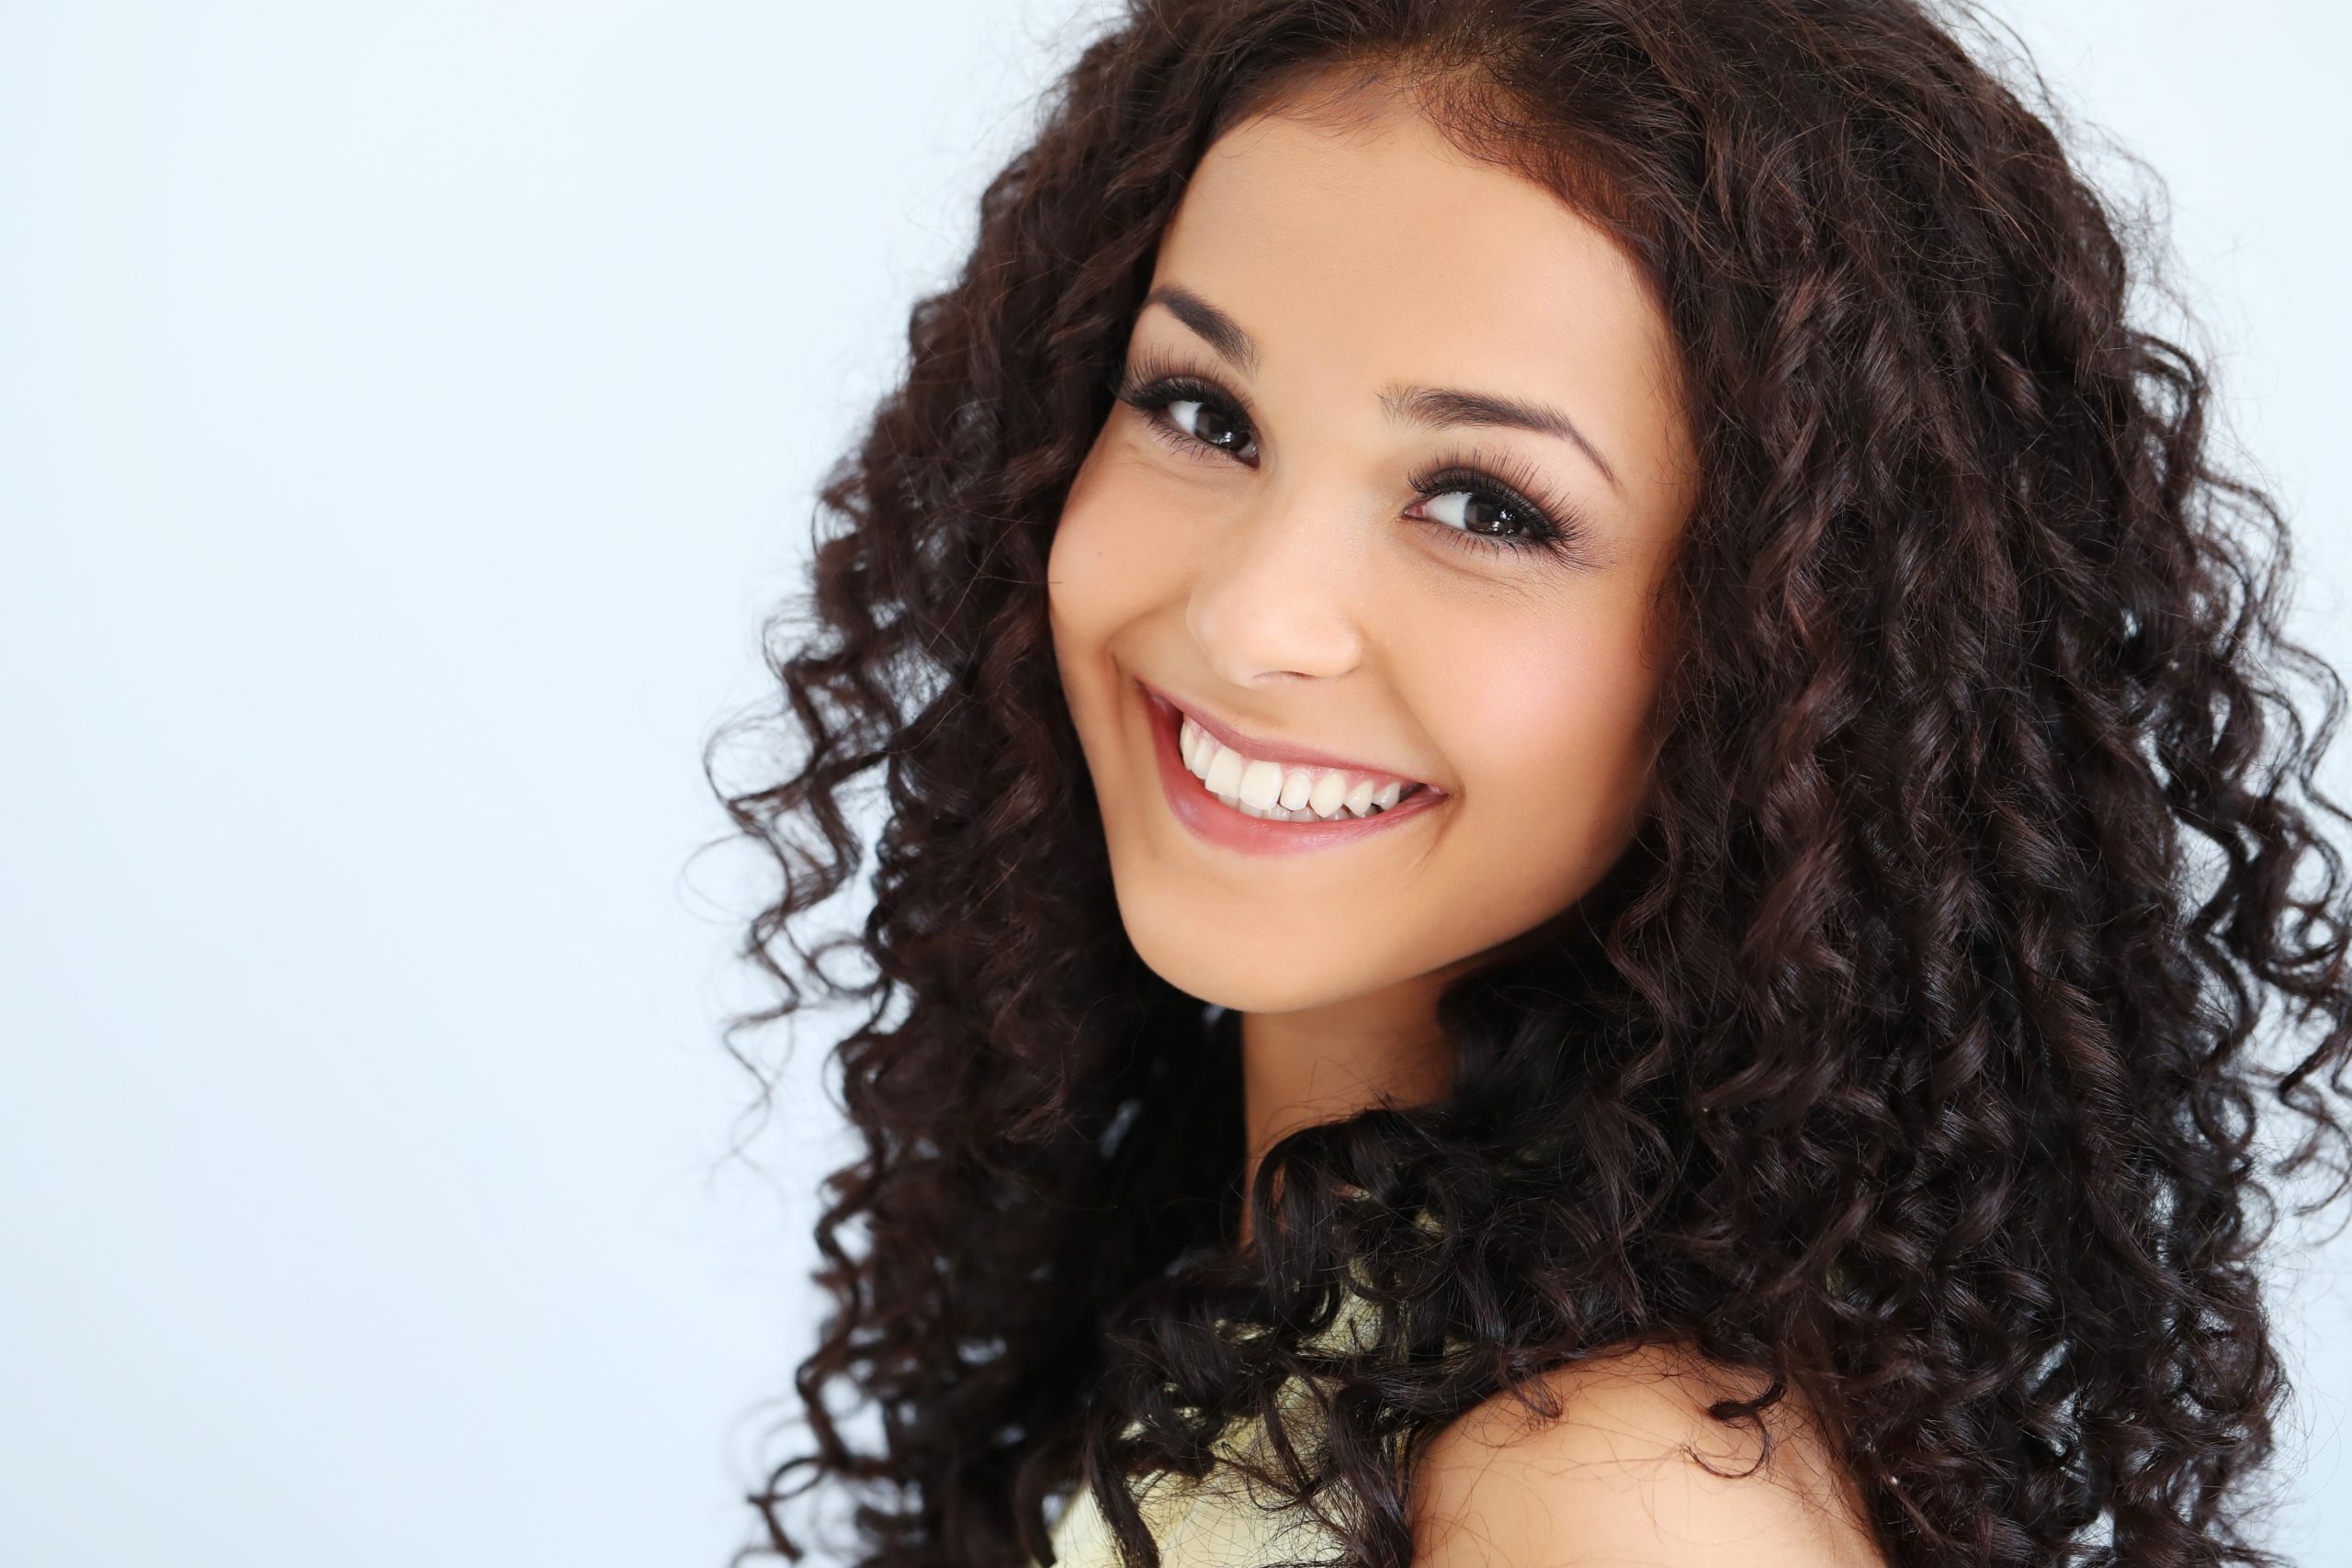 Venezuelan charming woman with curly hair